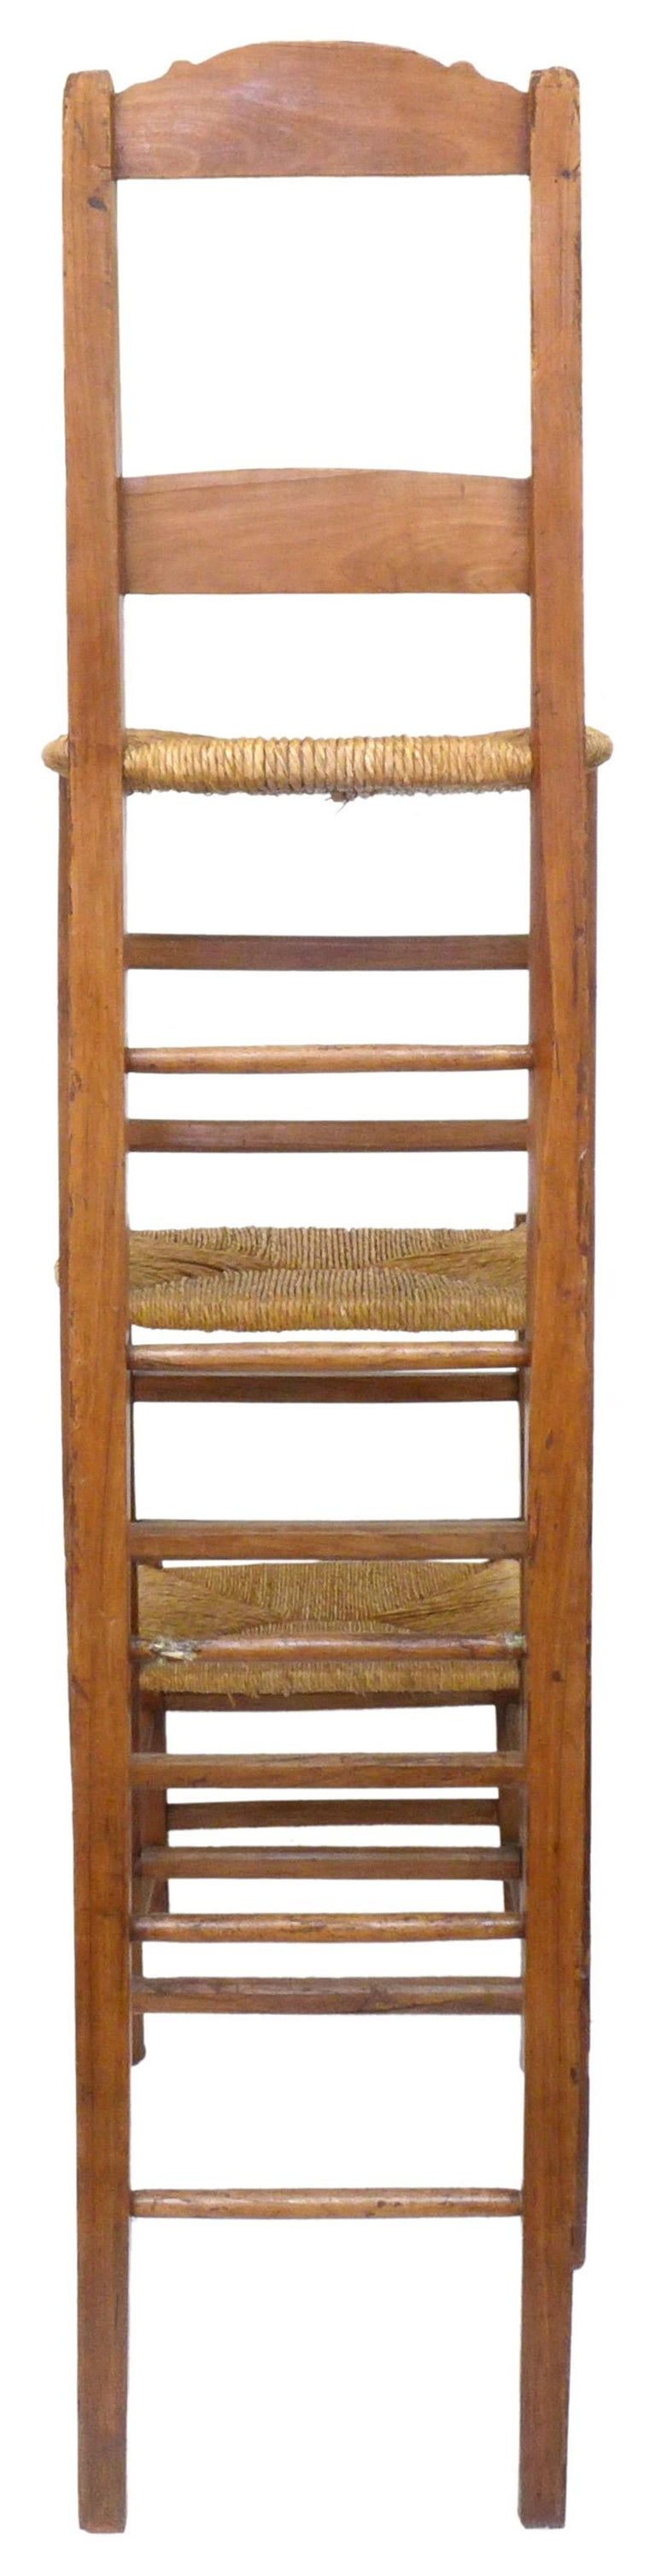 Unusual Triple-Stepped Wood and Woven Rush Chair In Good Condition For Sale In Los Angeles, CA